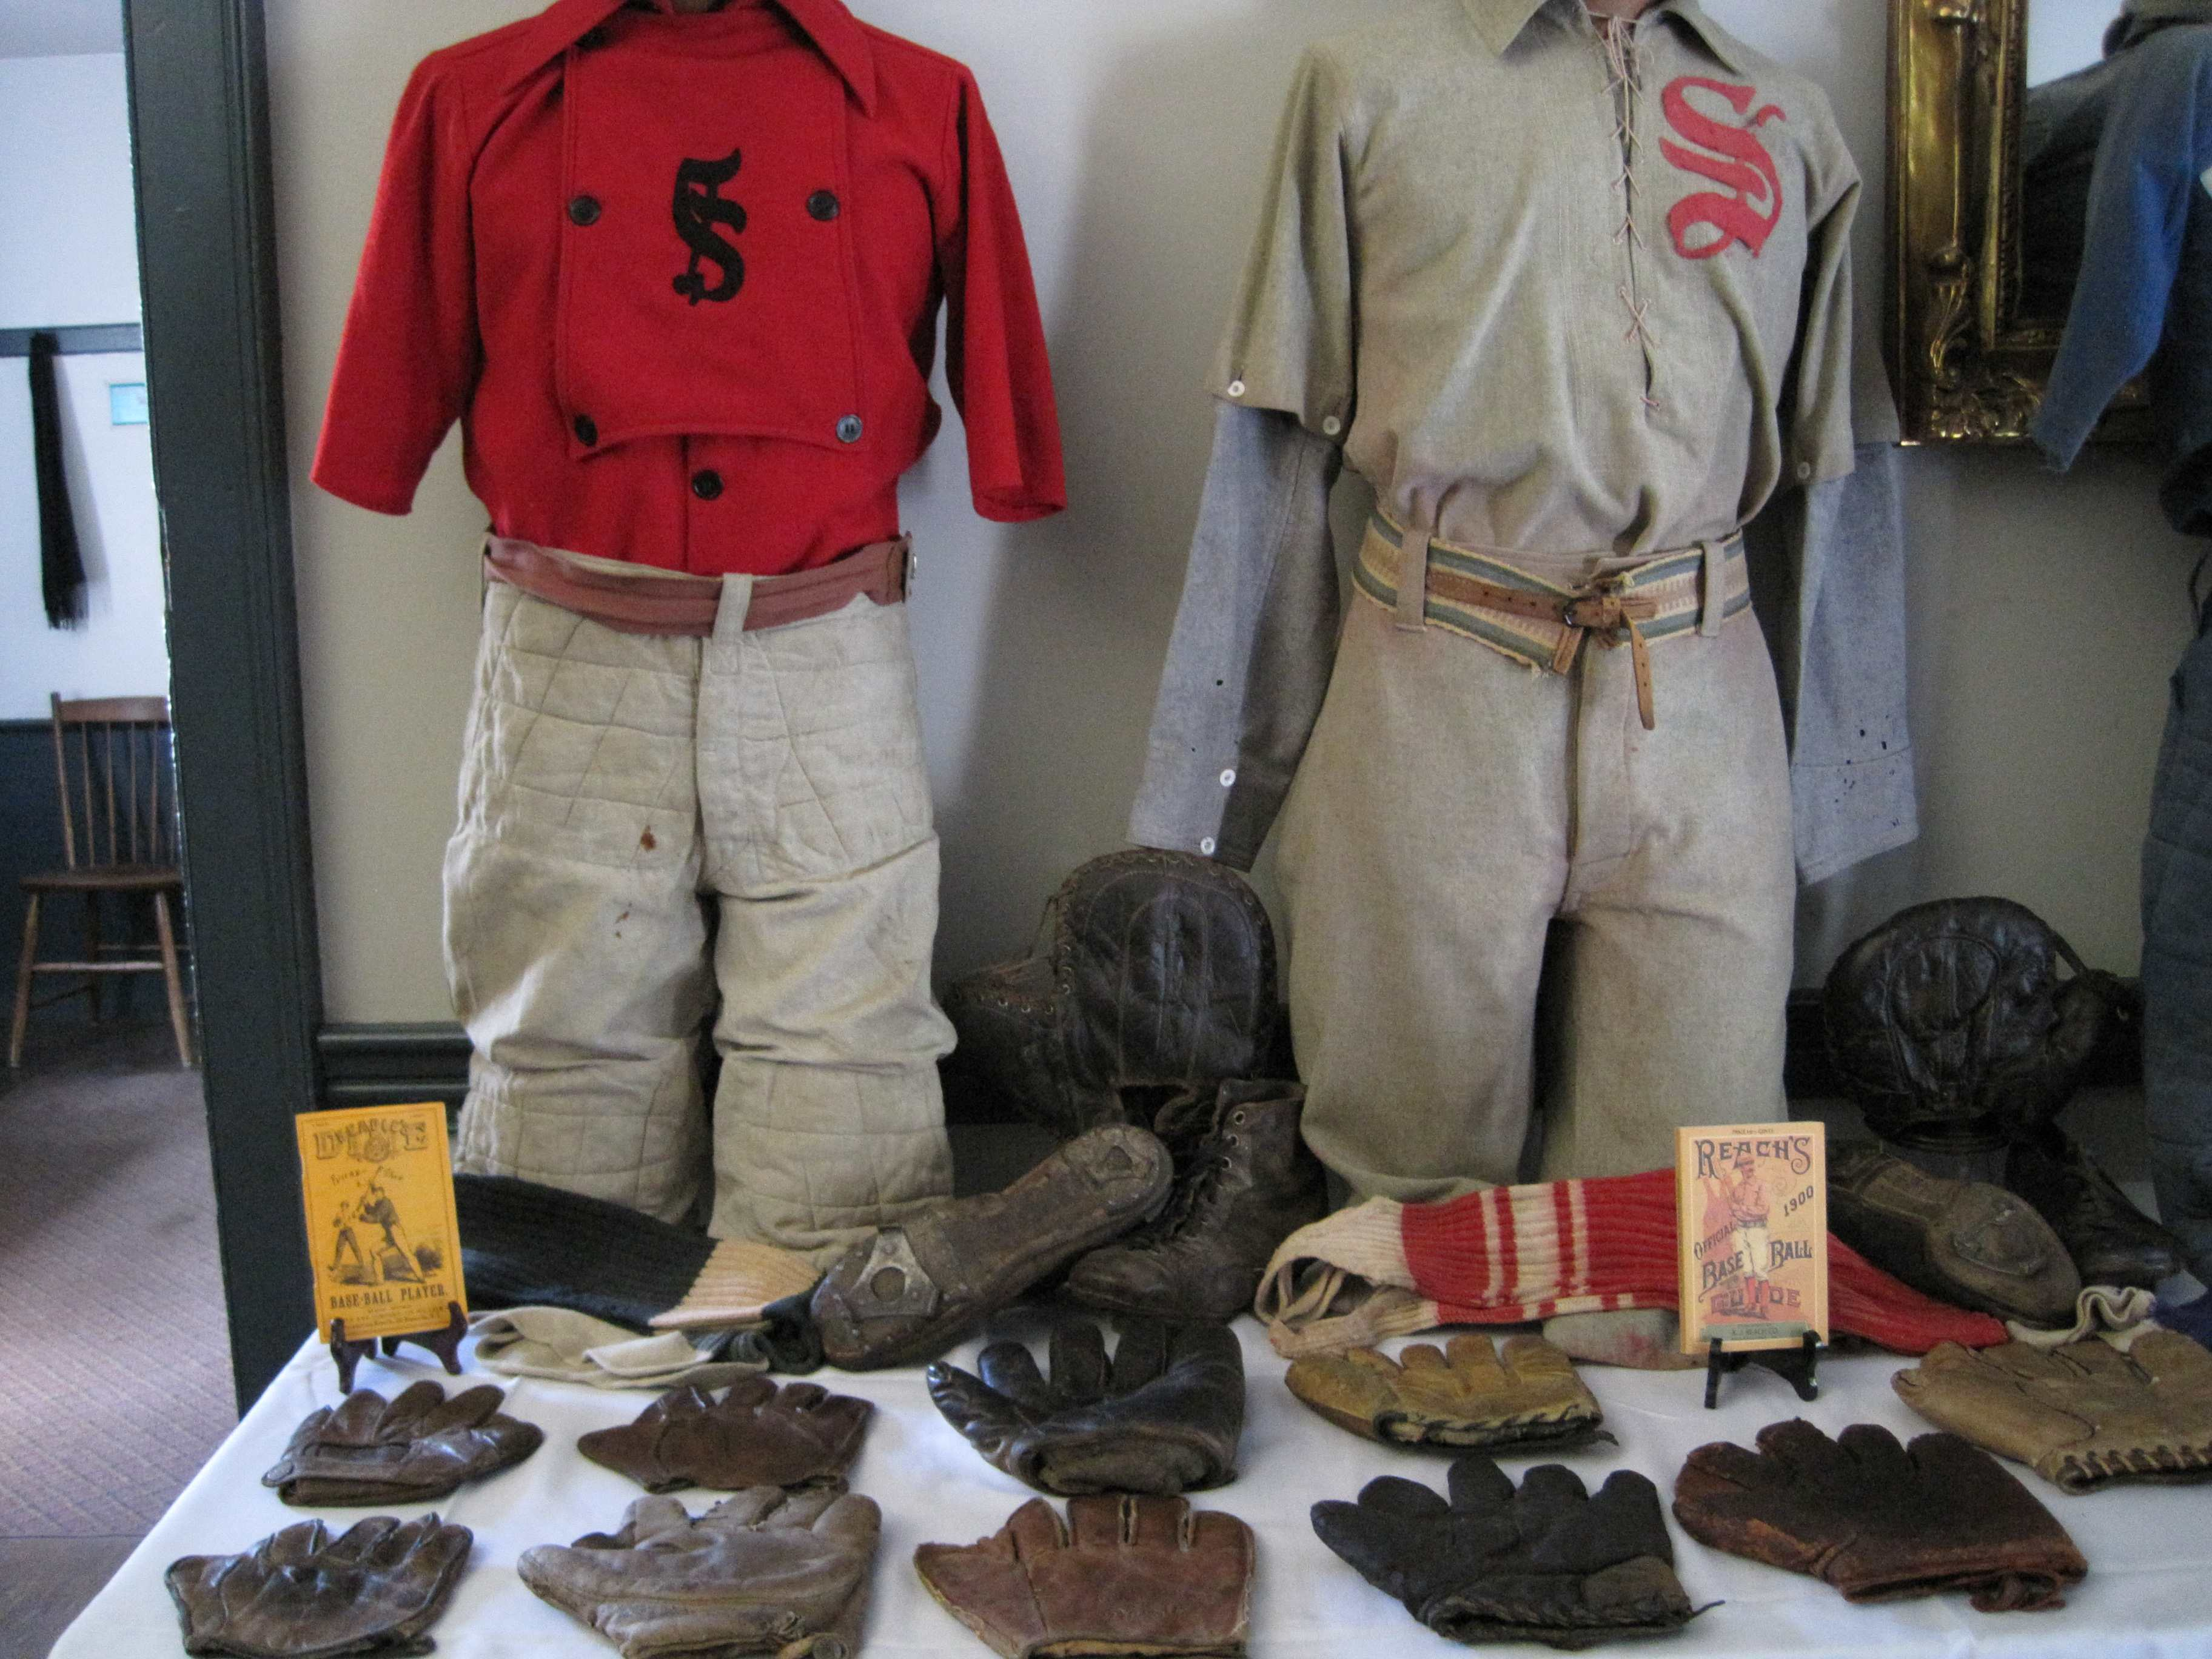 Tracy Martin's collection of vintage base ball equipment and uniforms spanning 150 years, will be part of Ohio Village's Glorious Fourth Celebration.